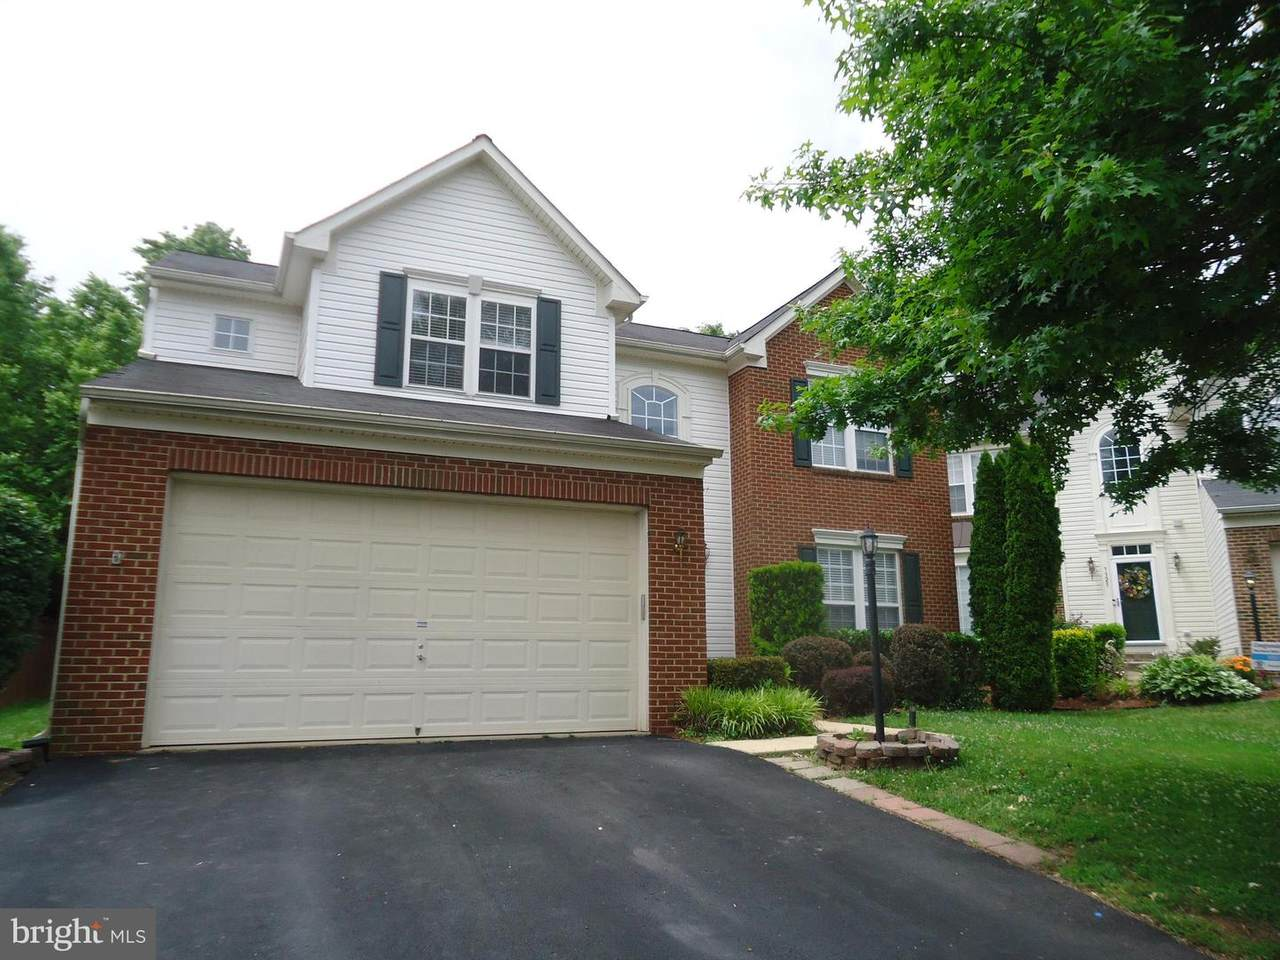 7325 Early Marker Court - Photo 1